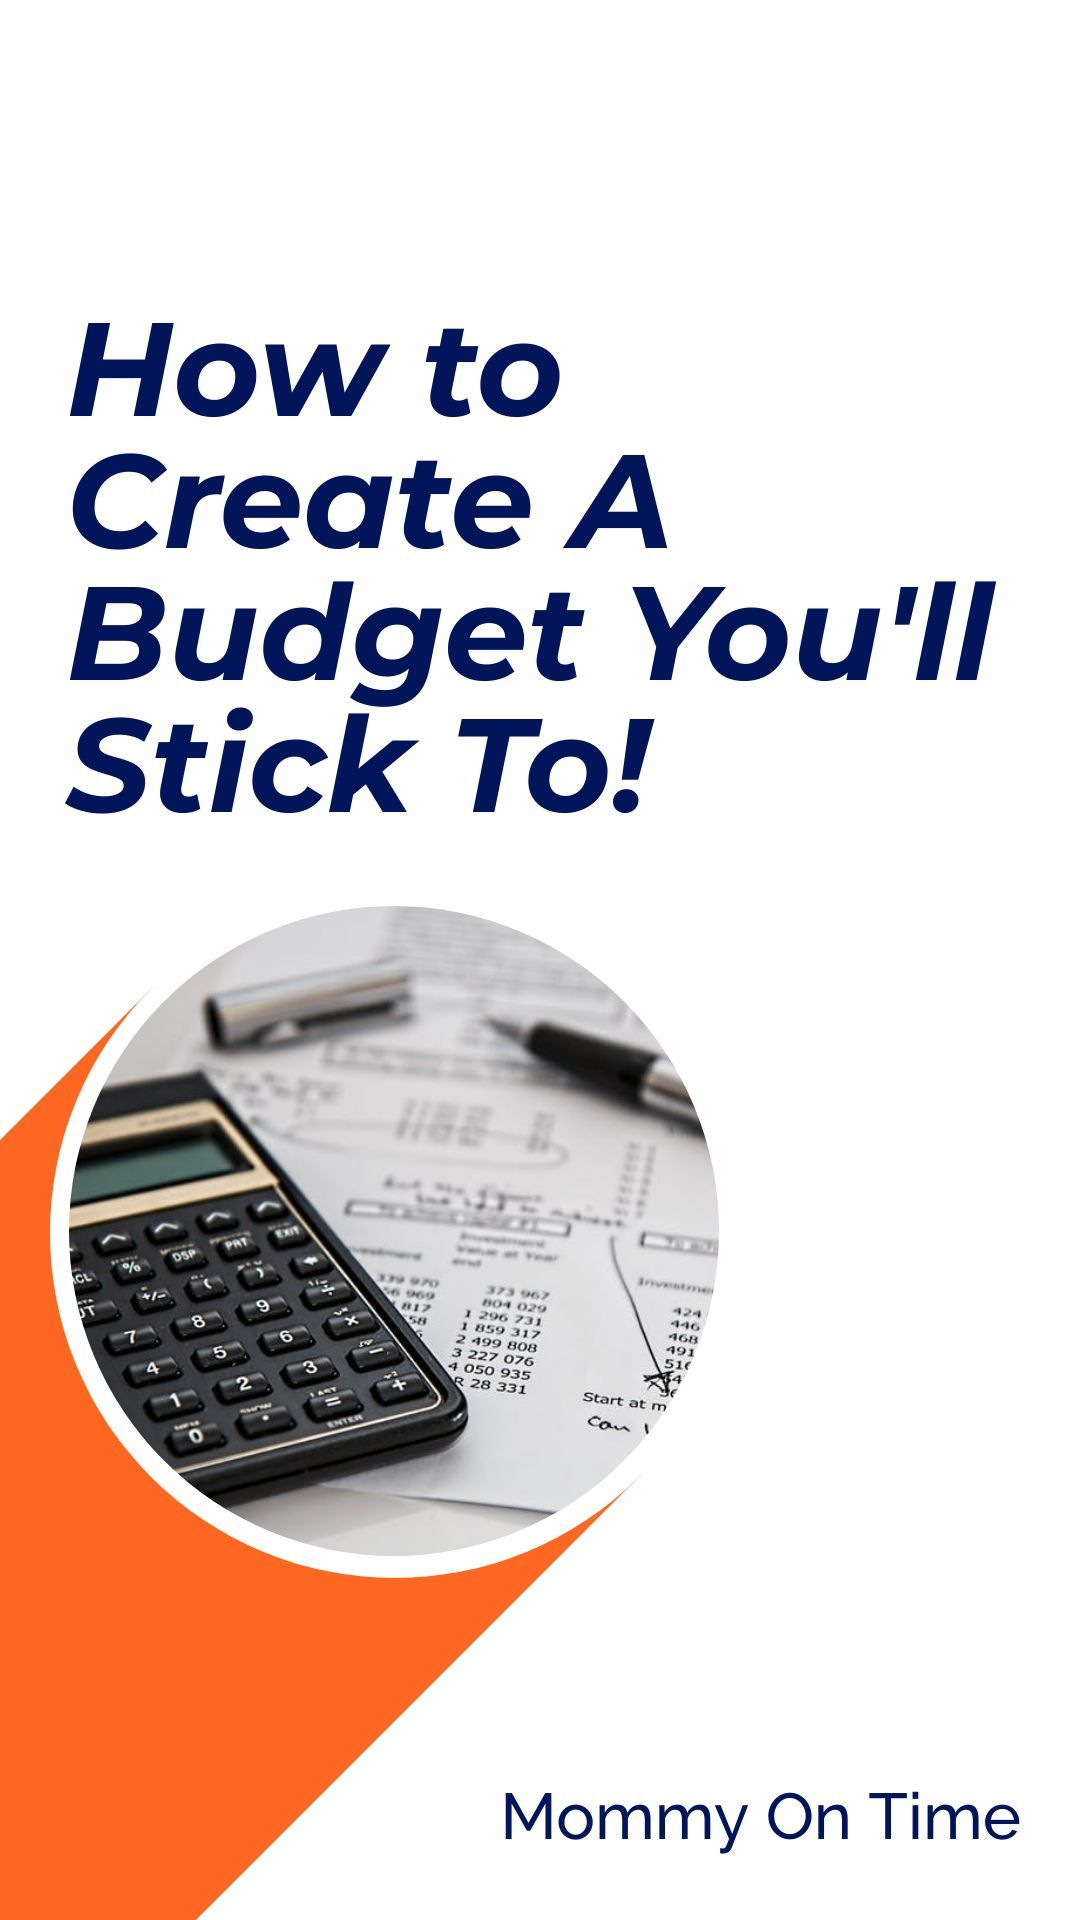 How To Create A Budget For Your Household